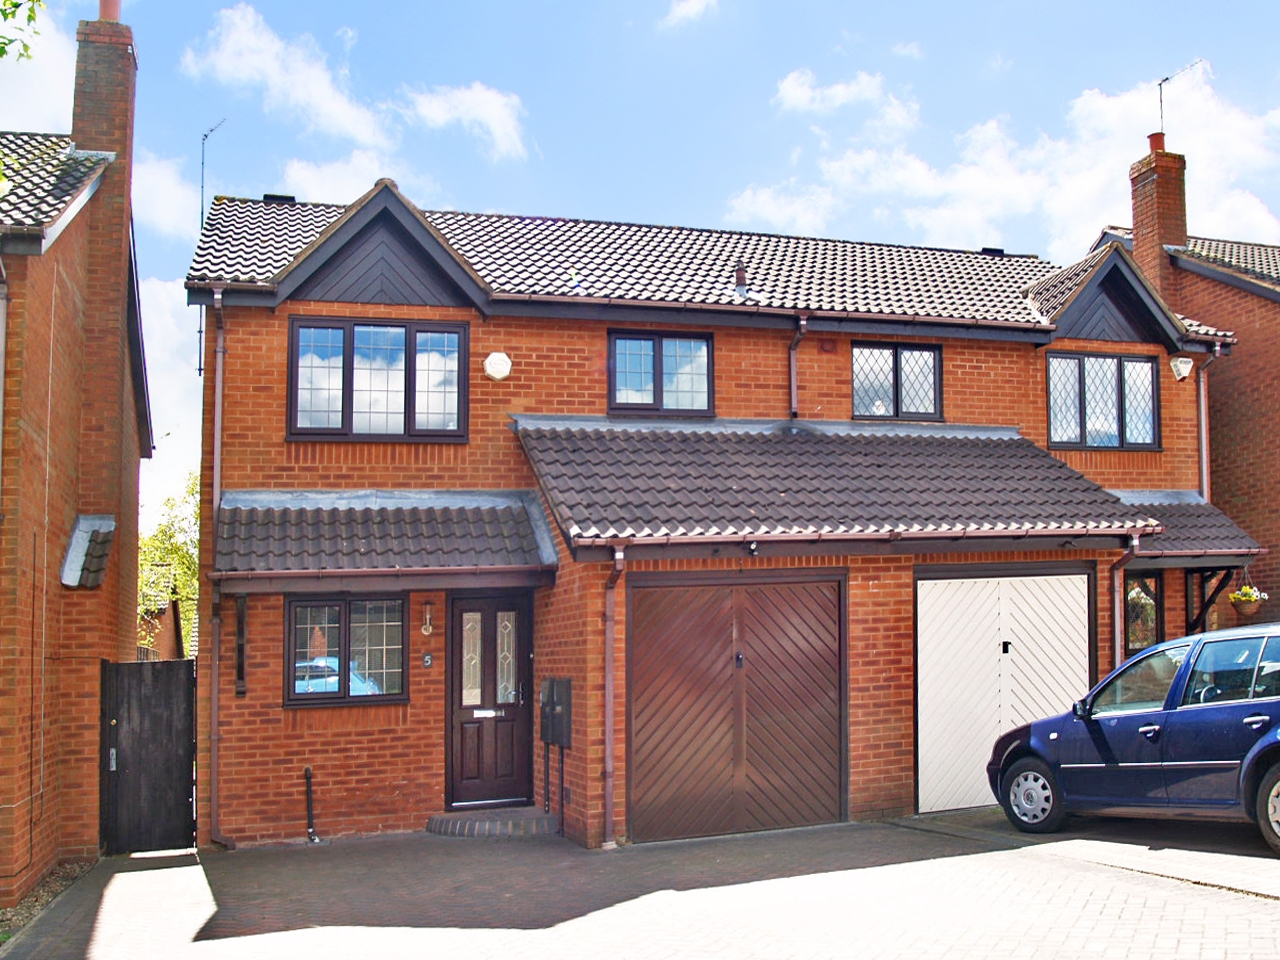 3 bedroom semi detached house SSTC in Solihull - Main Image.